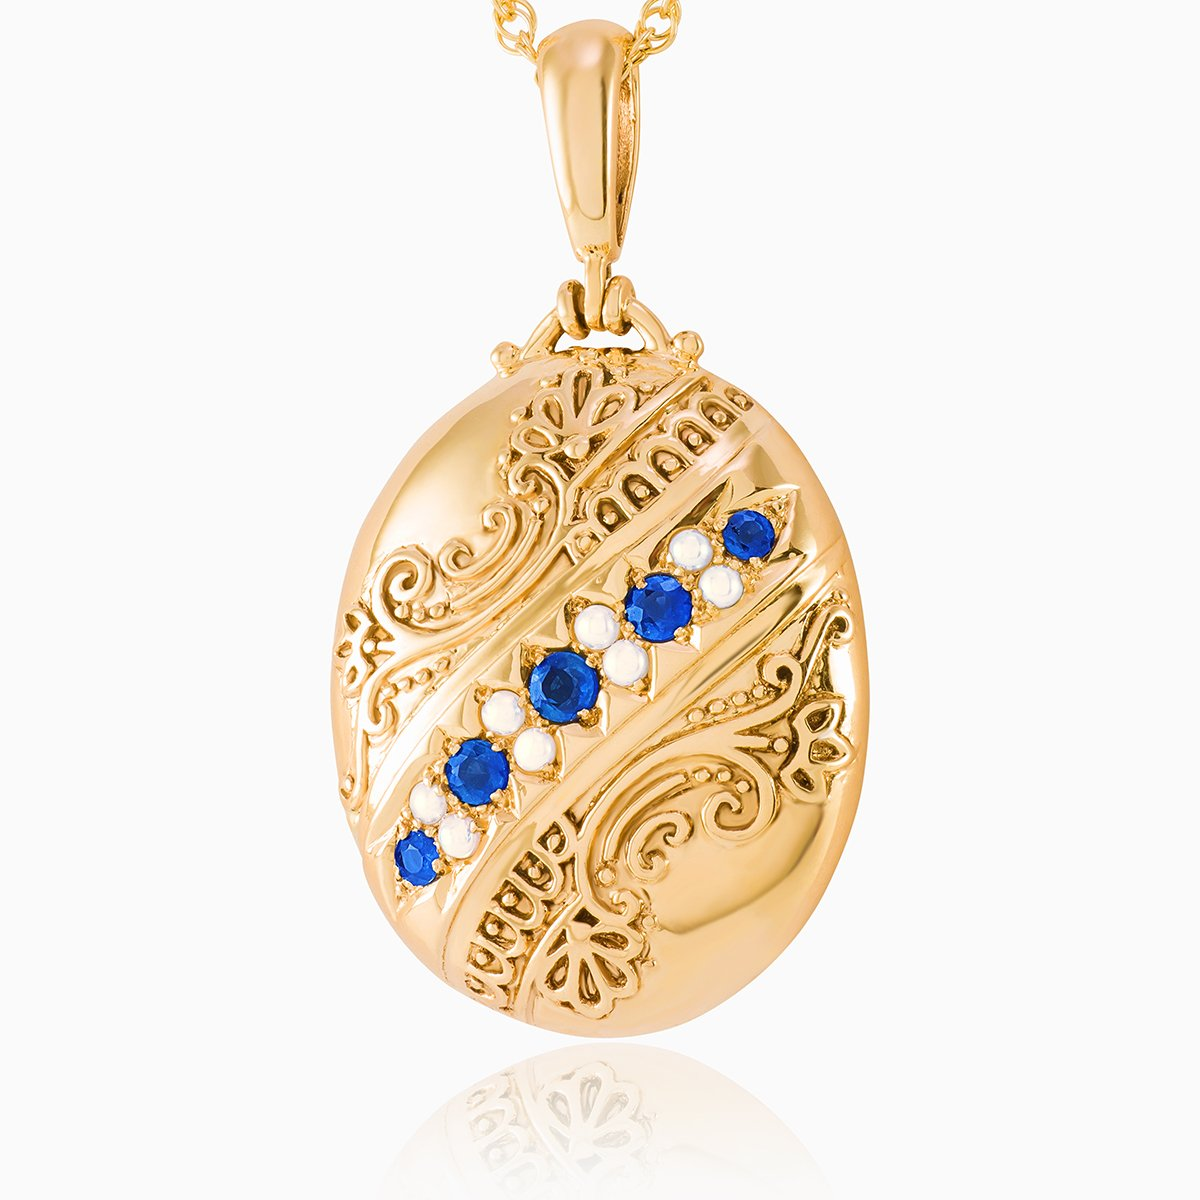 Product title: Large Sapphire Victorian Style Locket, product type: Locket